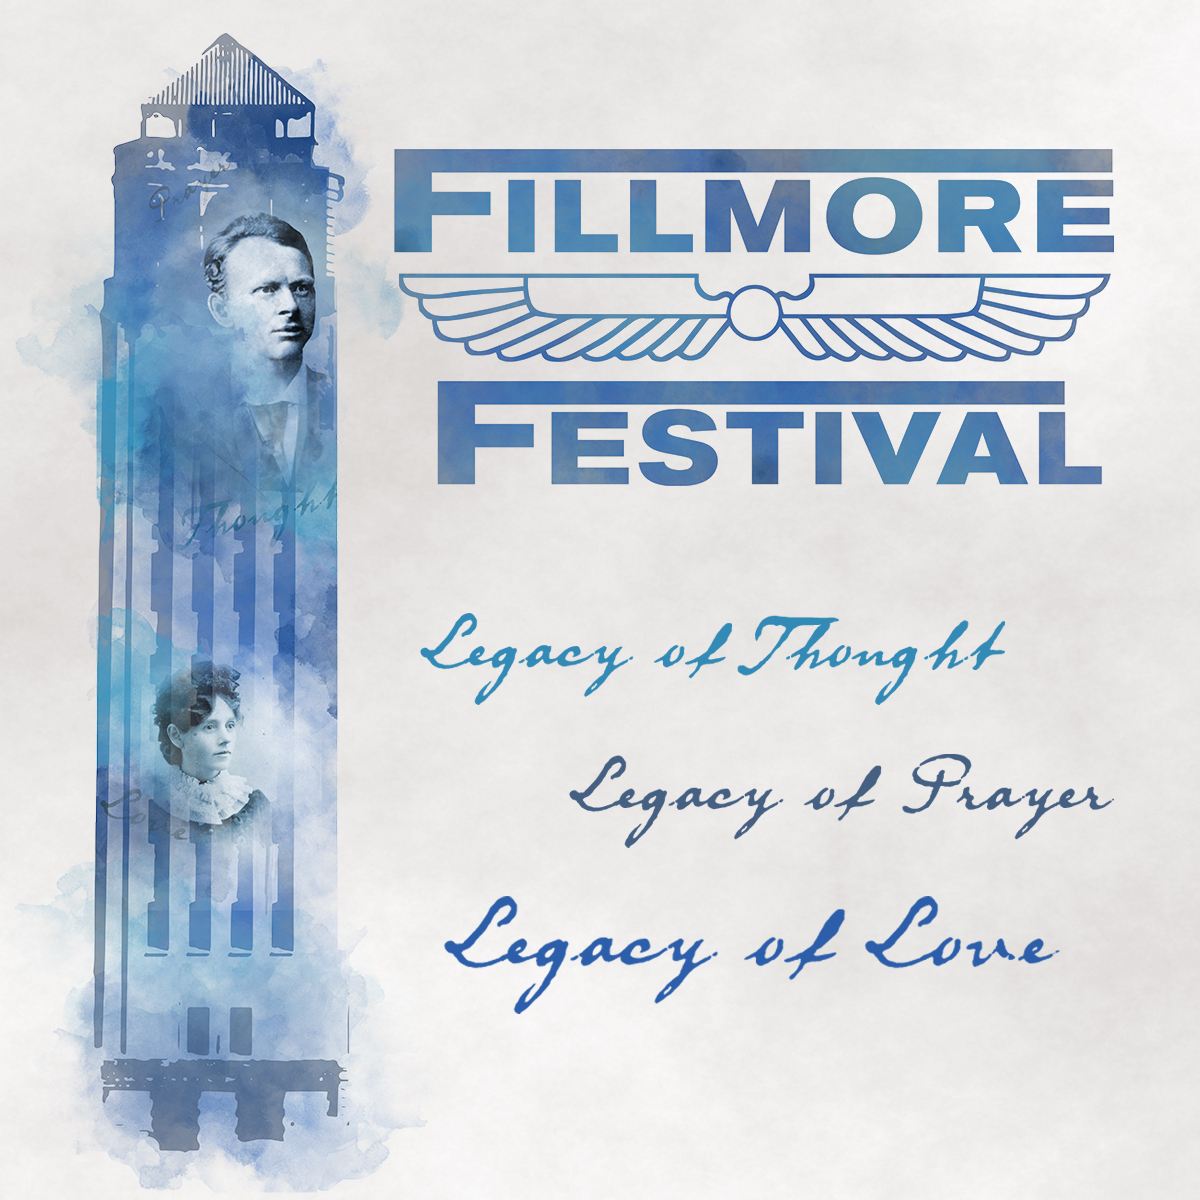 Fillmore Festival 2019 at Unity Village August 15–18, 2019, Legacy of Thought, Legacy of Prayer, Legacy of Love